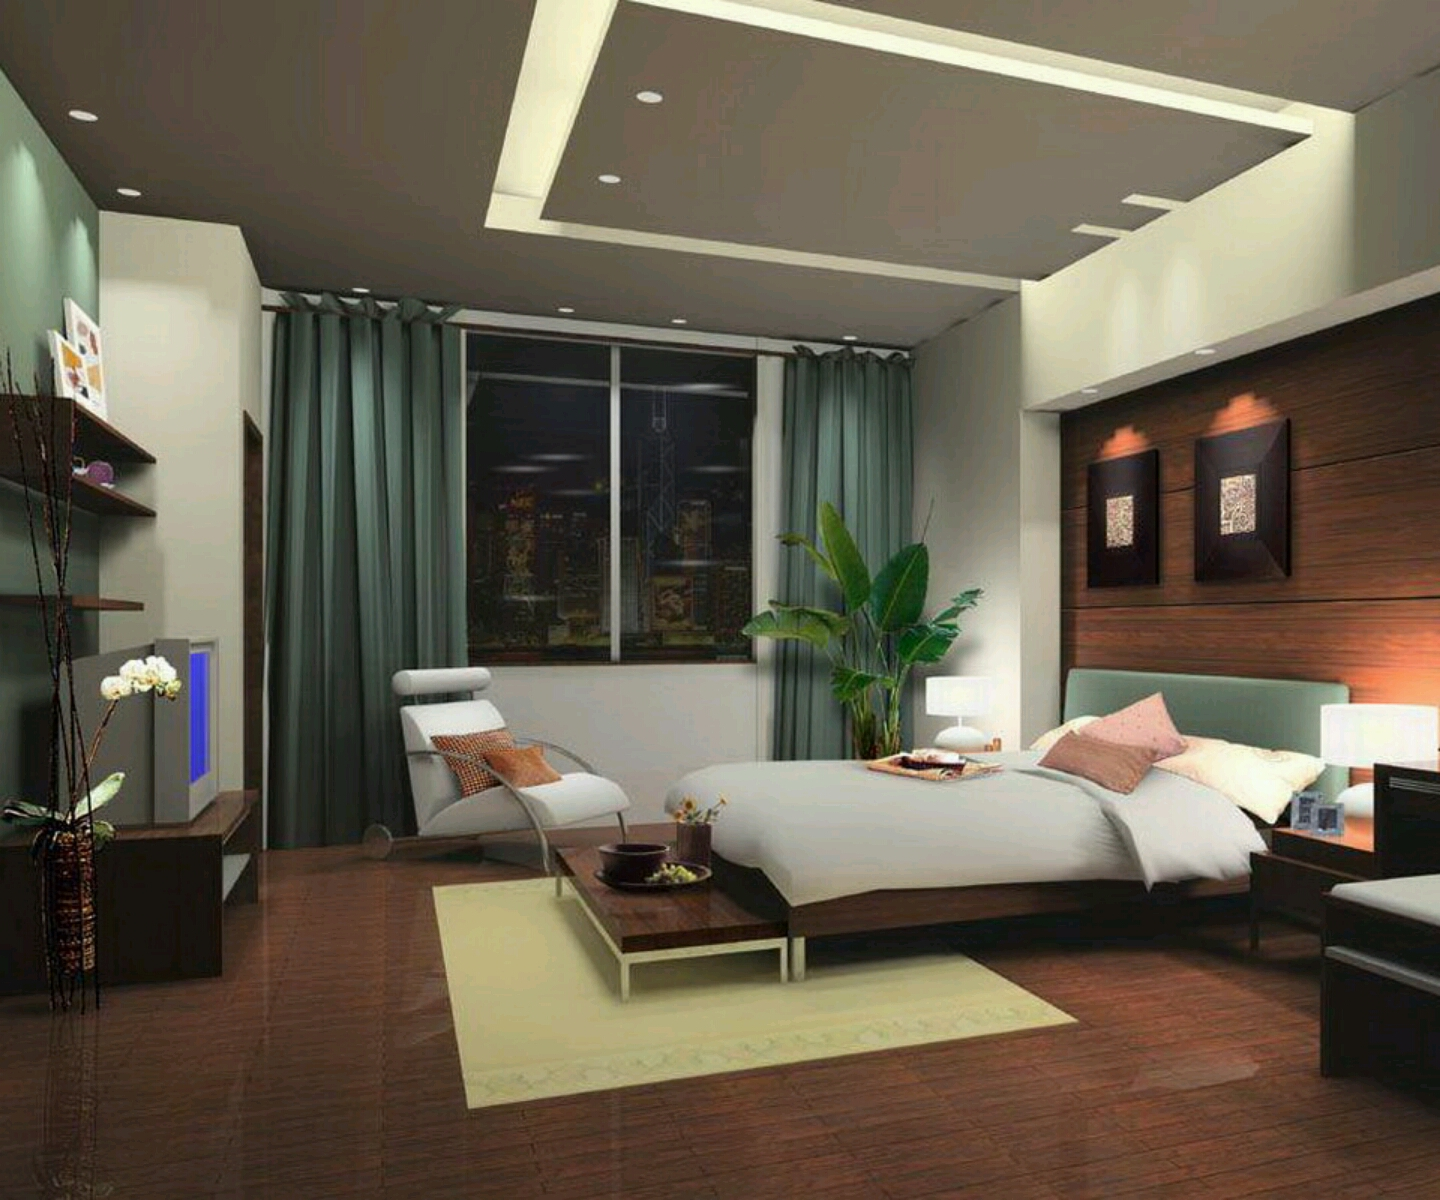 New home designs latest modern bedrooms designs best ideas for Beautiful bedrooms 2016